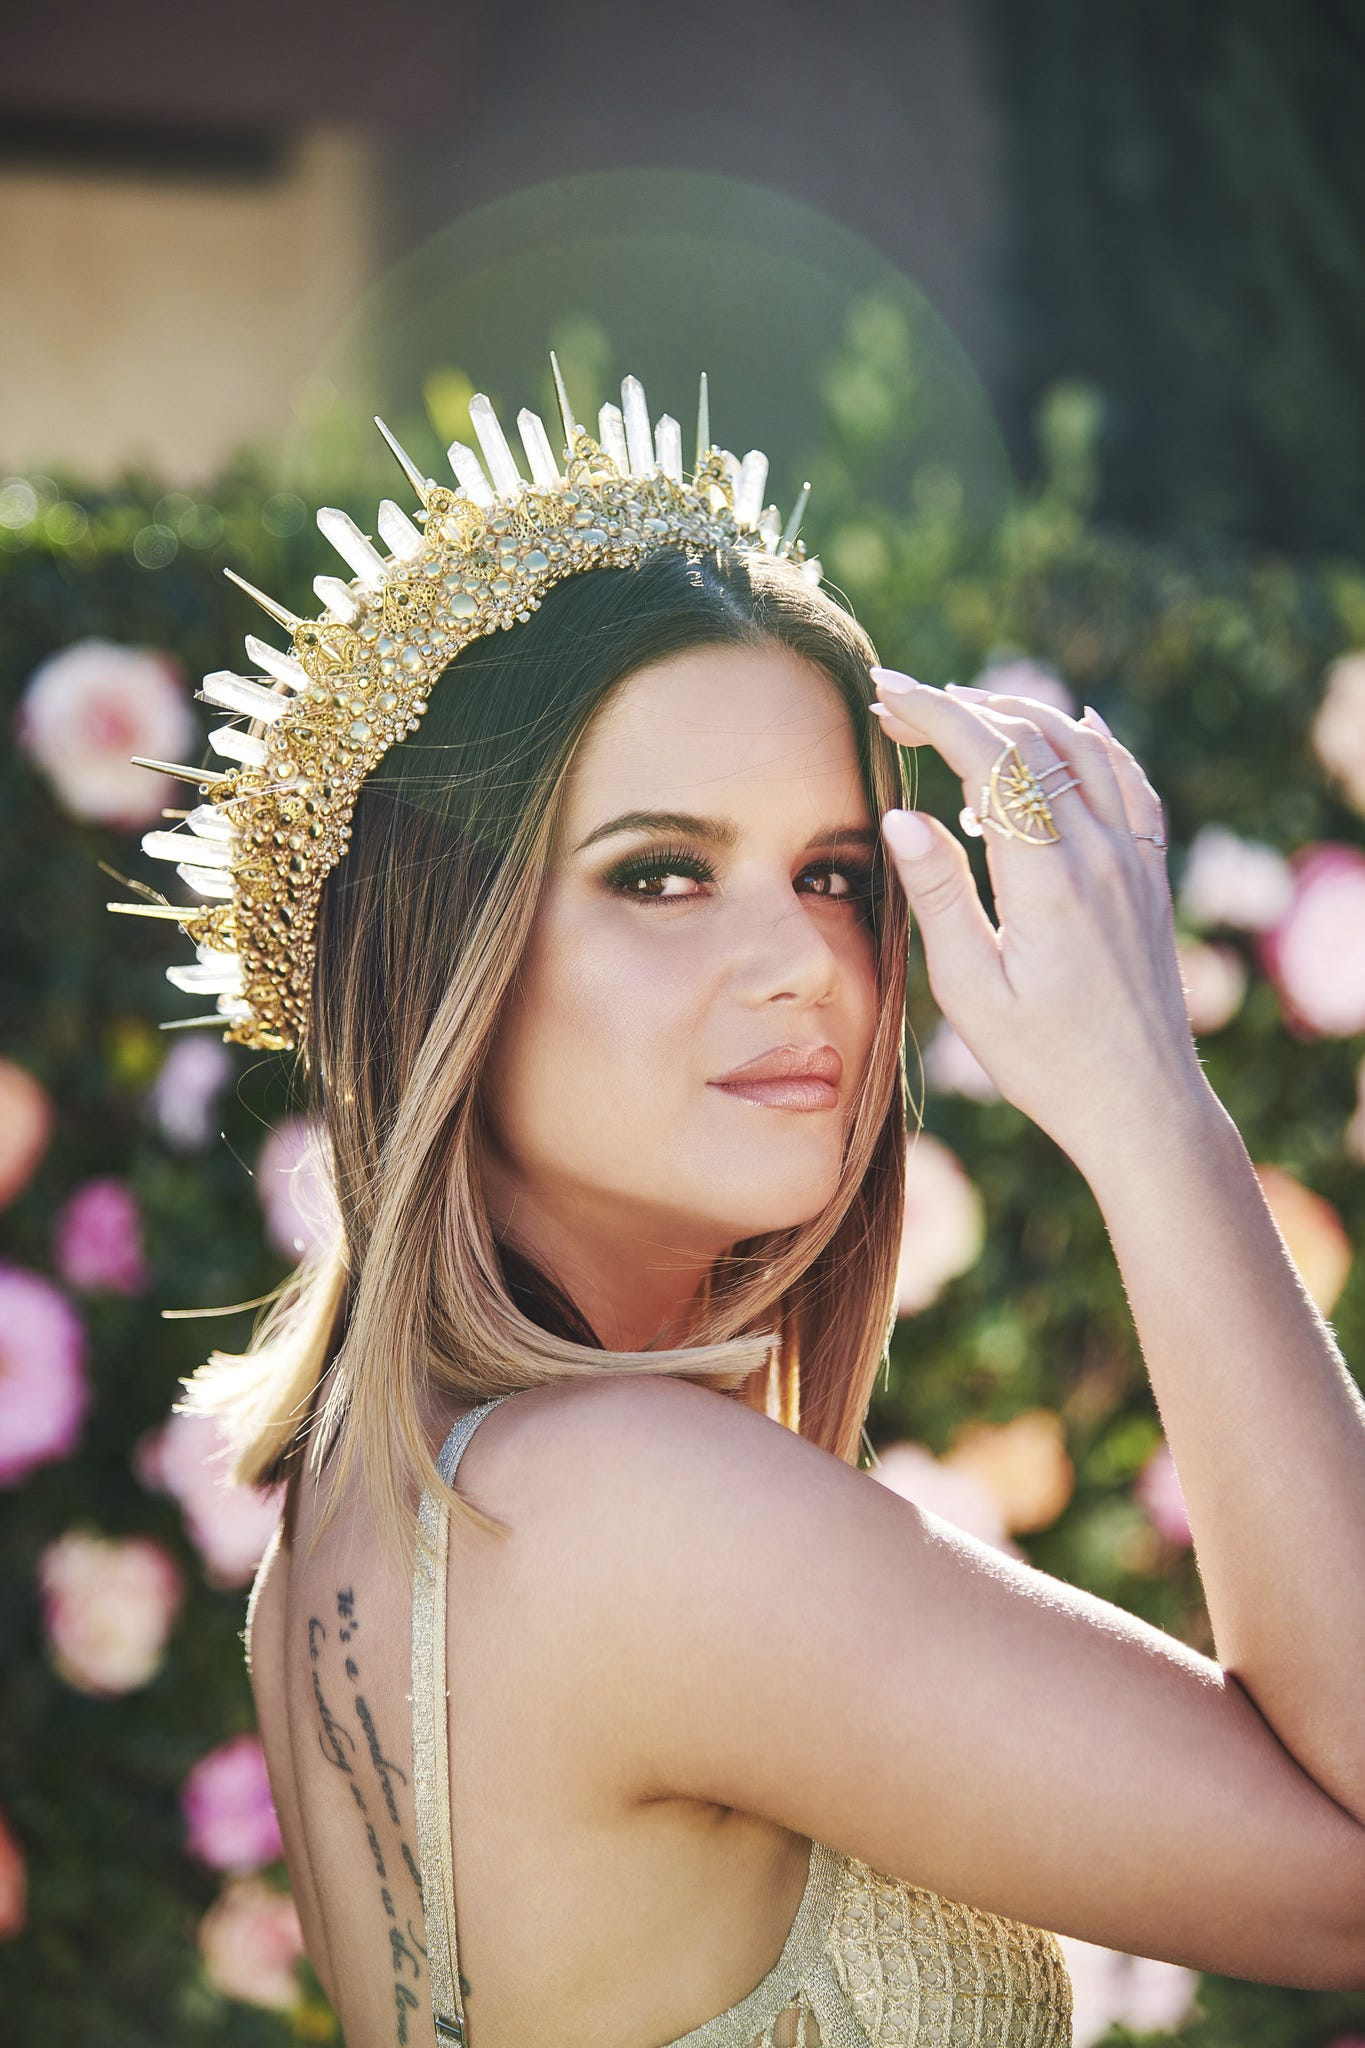 Grammys 2019: Maren Morris on her pivot to pop and what comes next